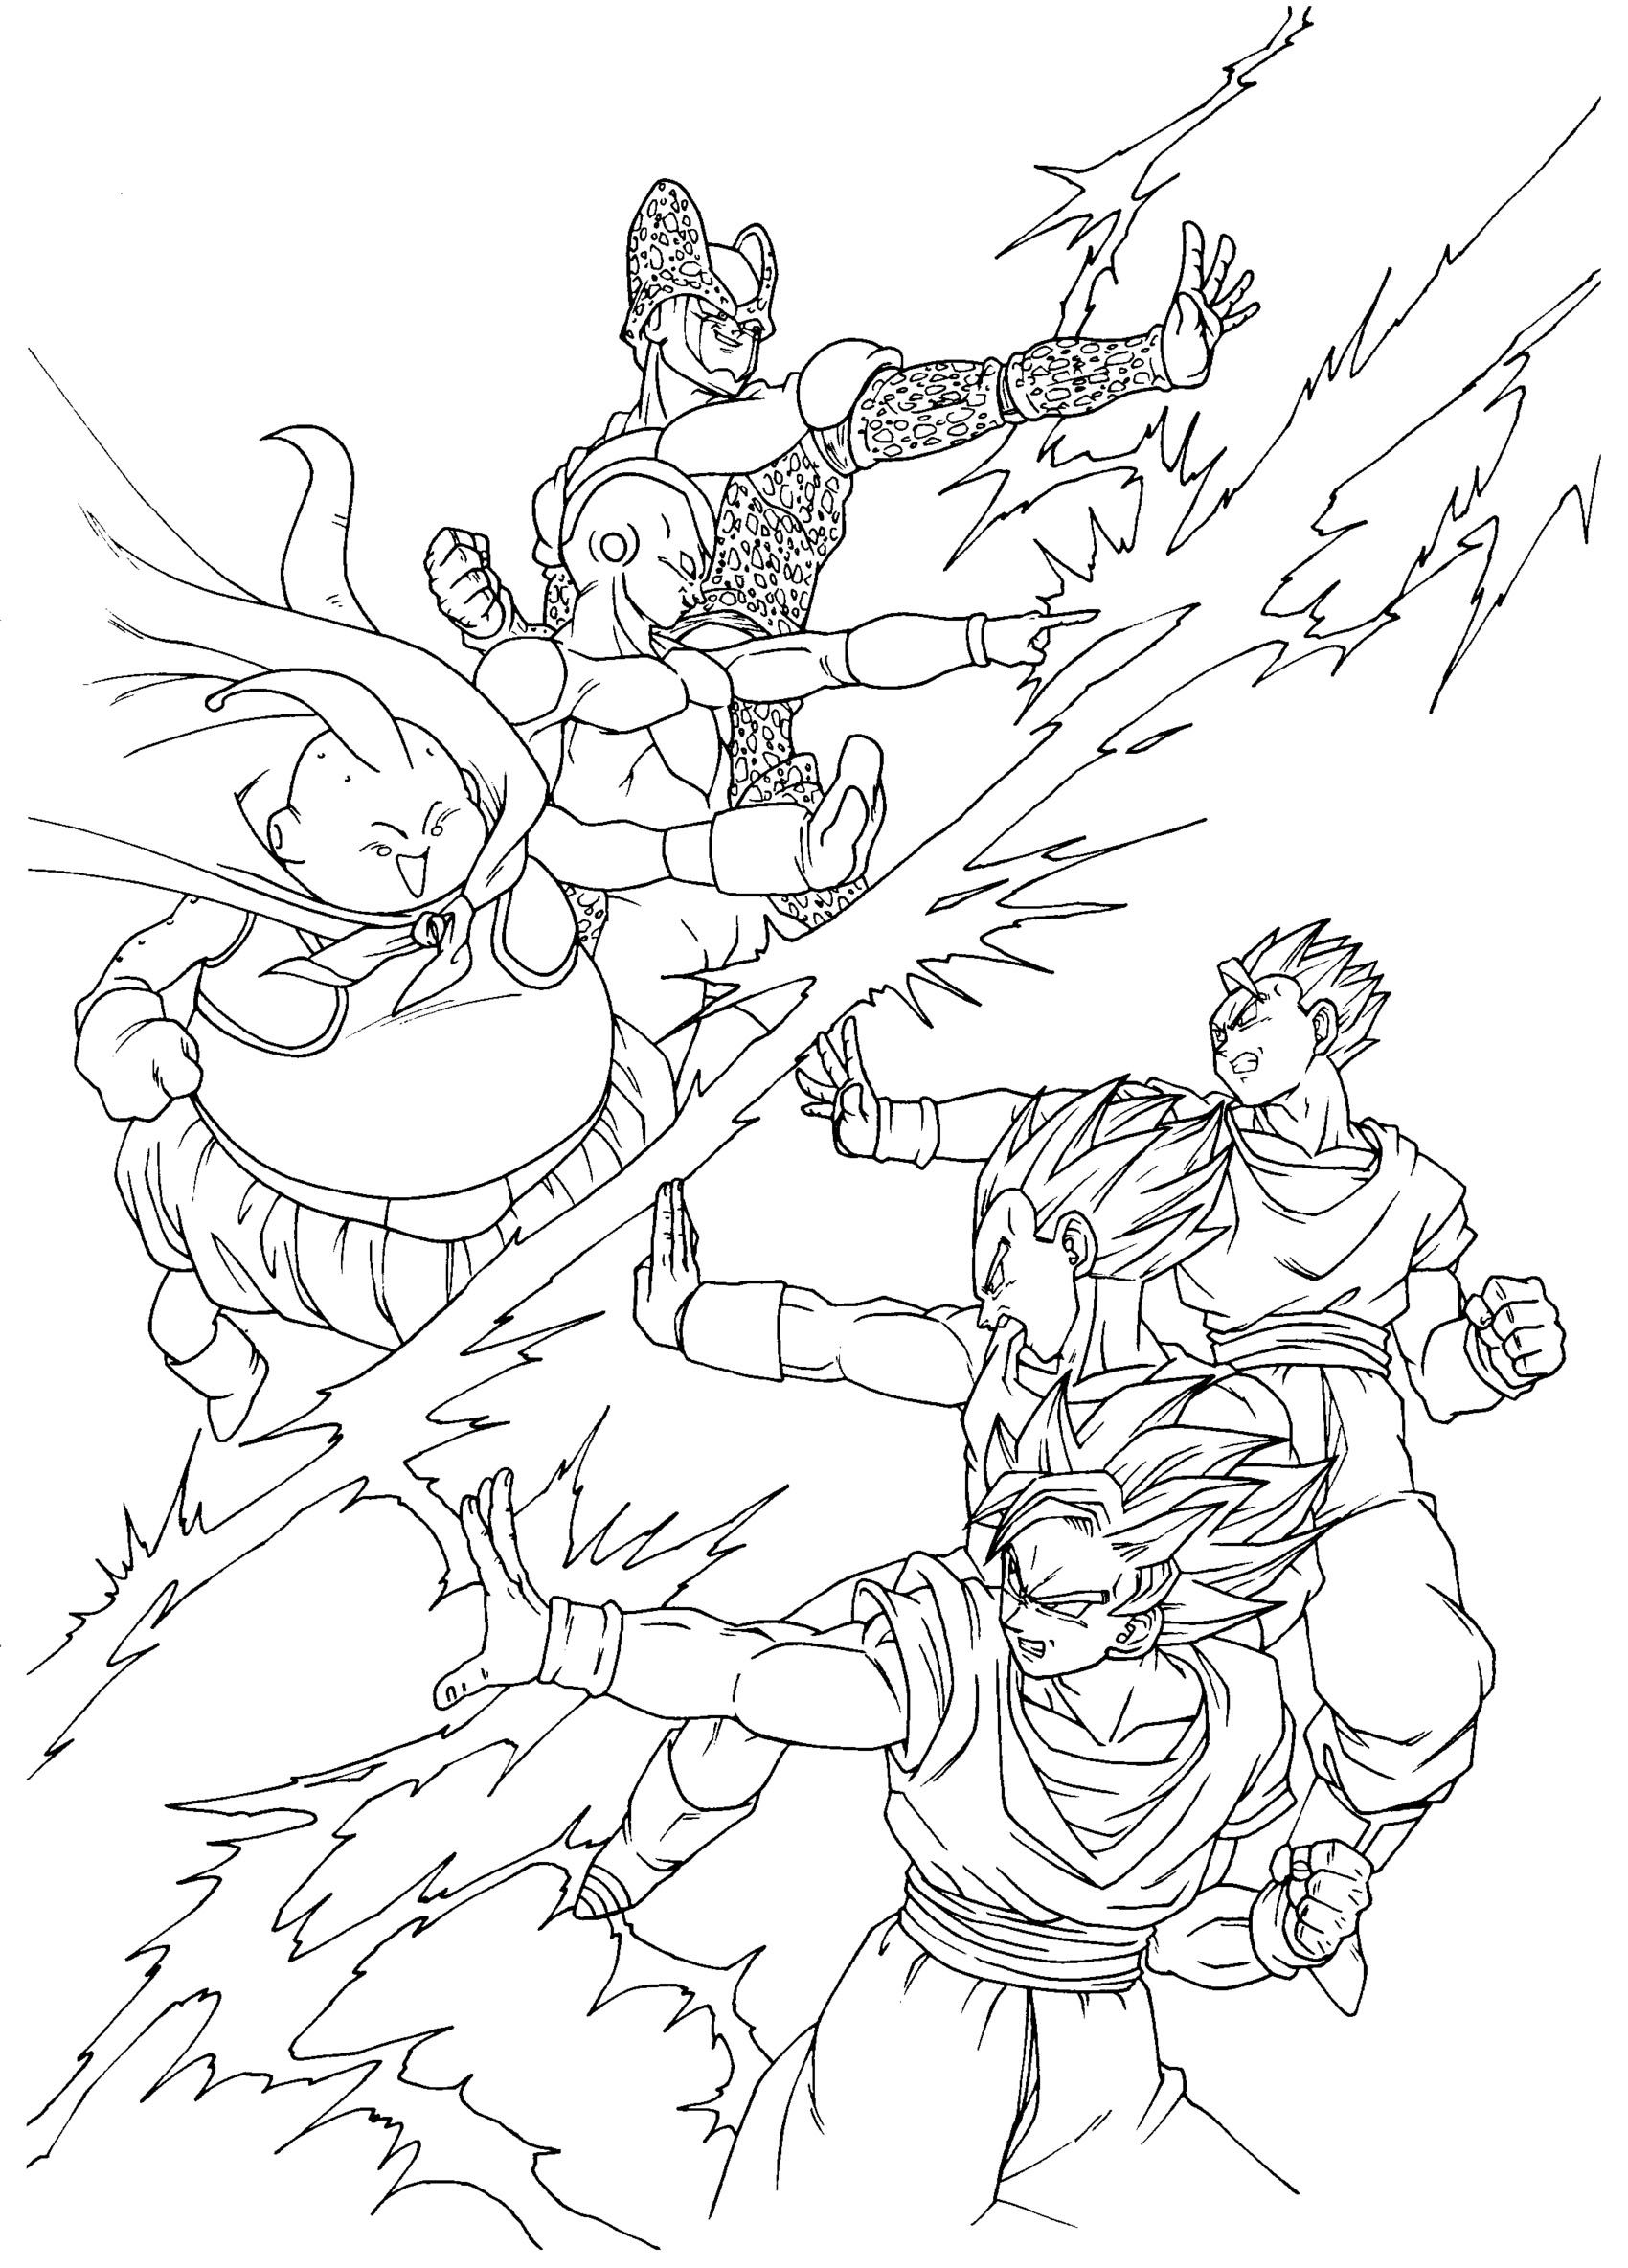 Free Dragon Ball Z coloring page to print and color, for kids : Songoku , Vegeta , SonGohan against Cell , Boo and Freezer